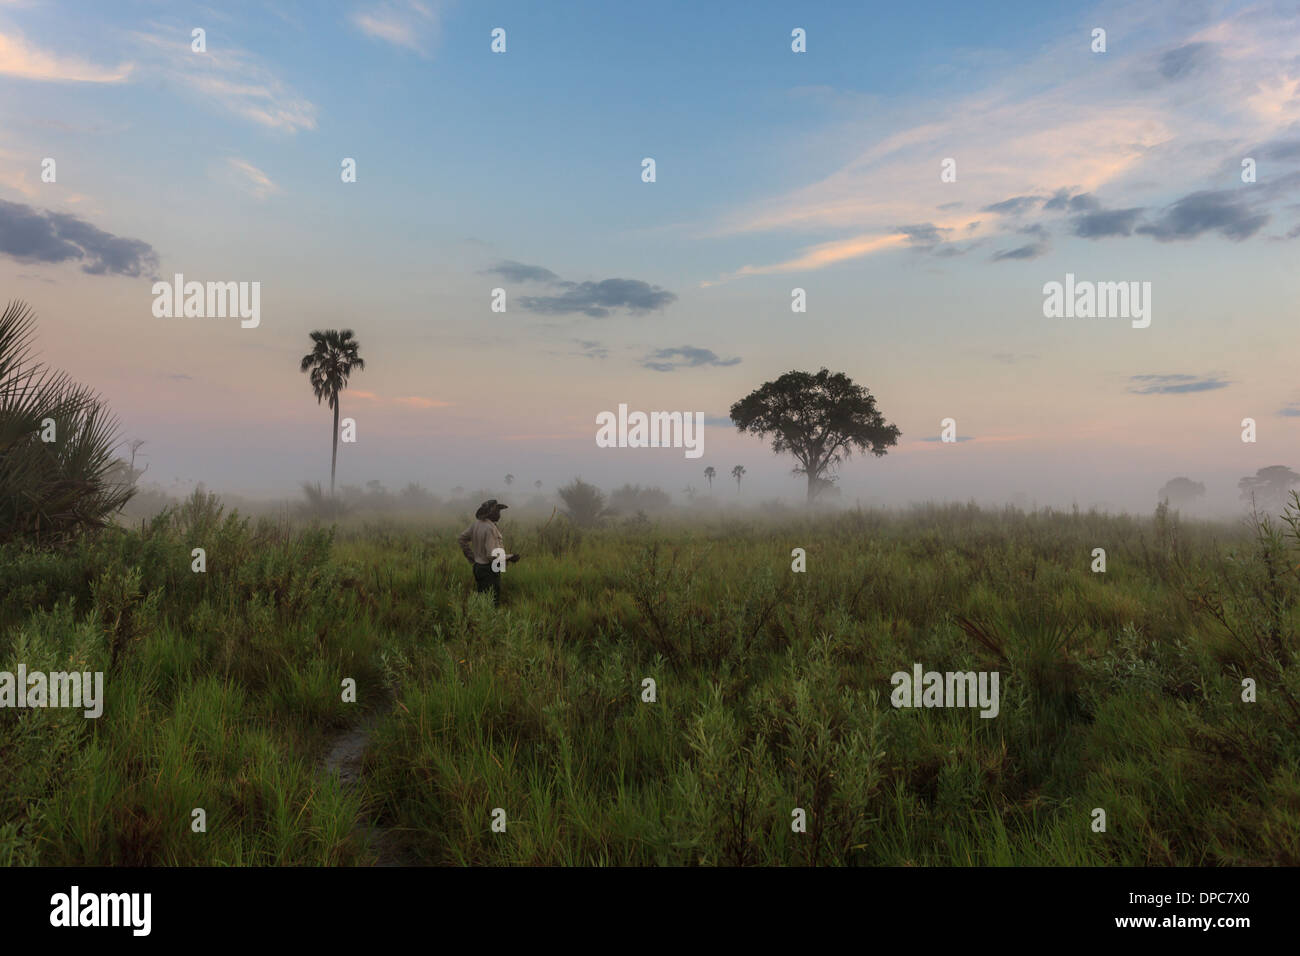 Safari guide studies wetlands for signs of wildlife to show tourists, Botswana, Africa - Stock Image